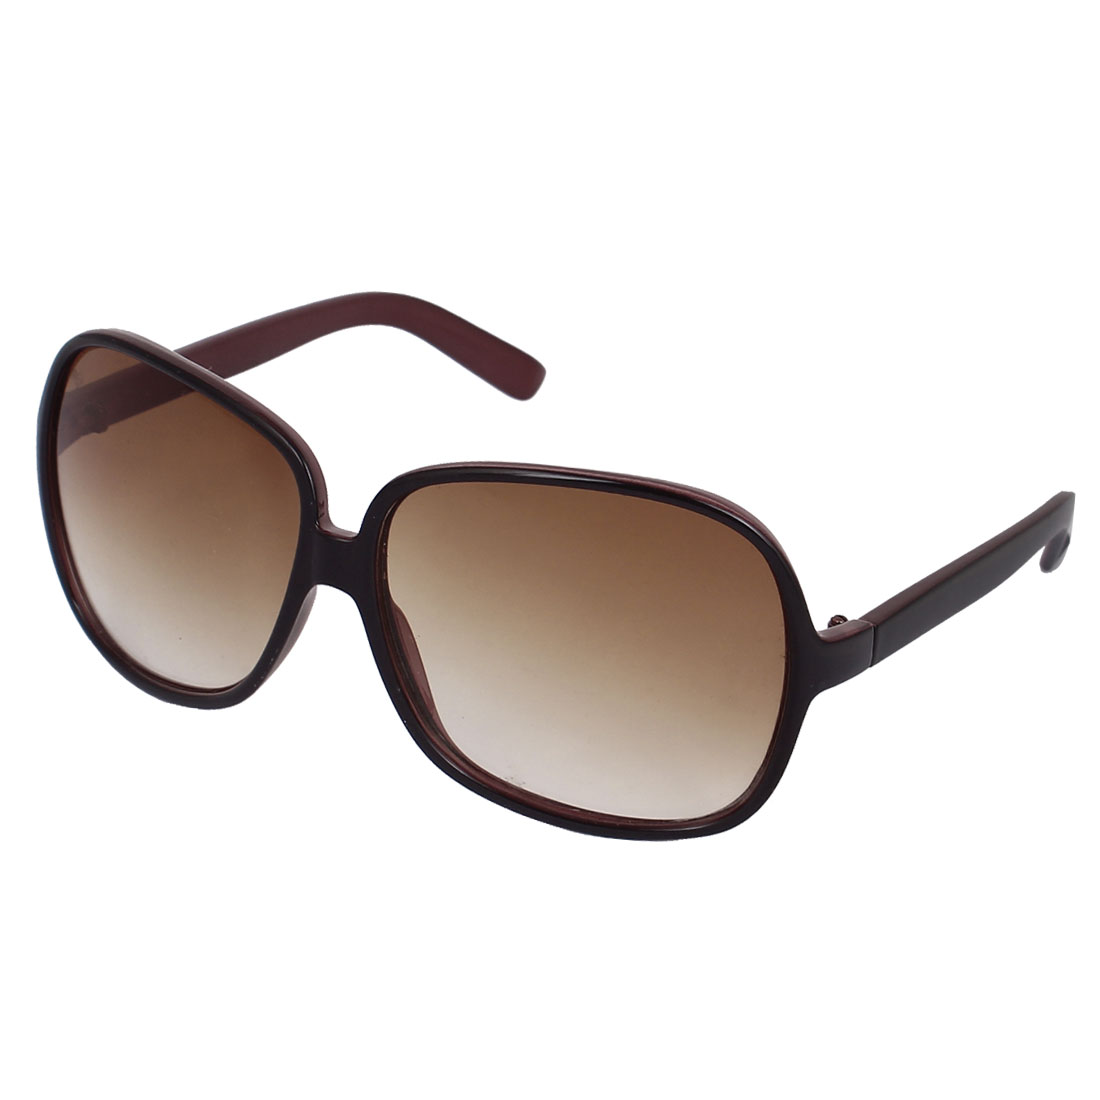 Women Plastic Full Frame Single Bridge Teardrop Lens Sunglasses Brown